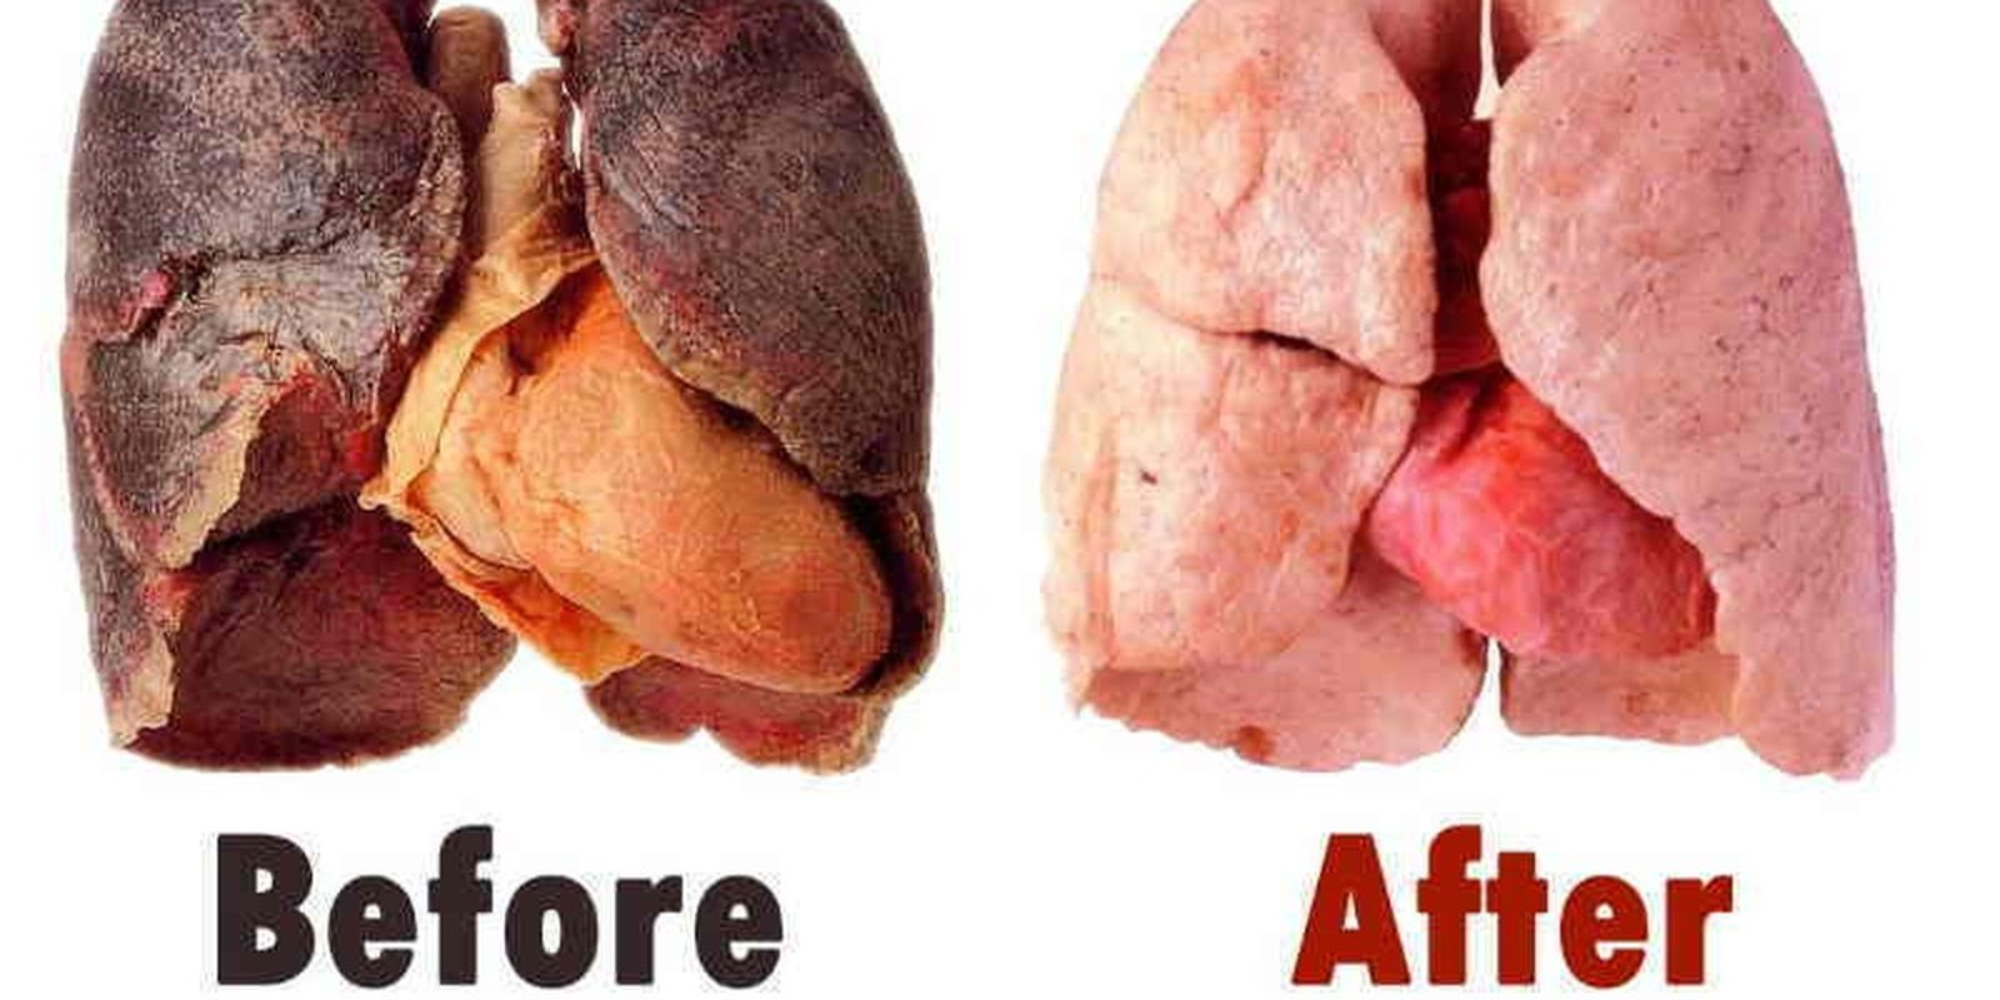 If You're A Smoker, You Need To Do This To Clean Your Lungs